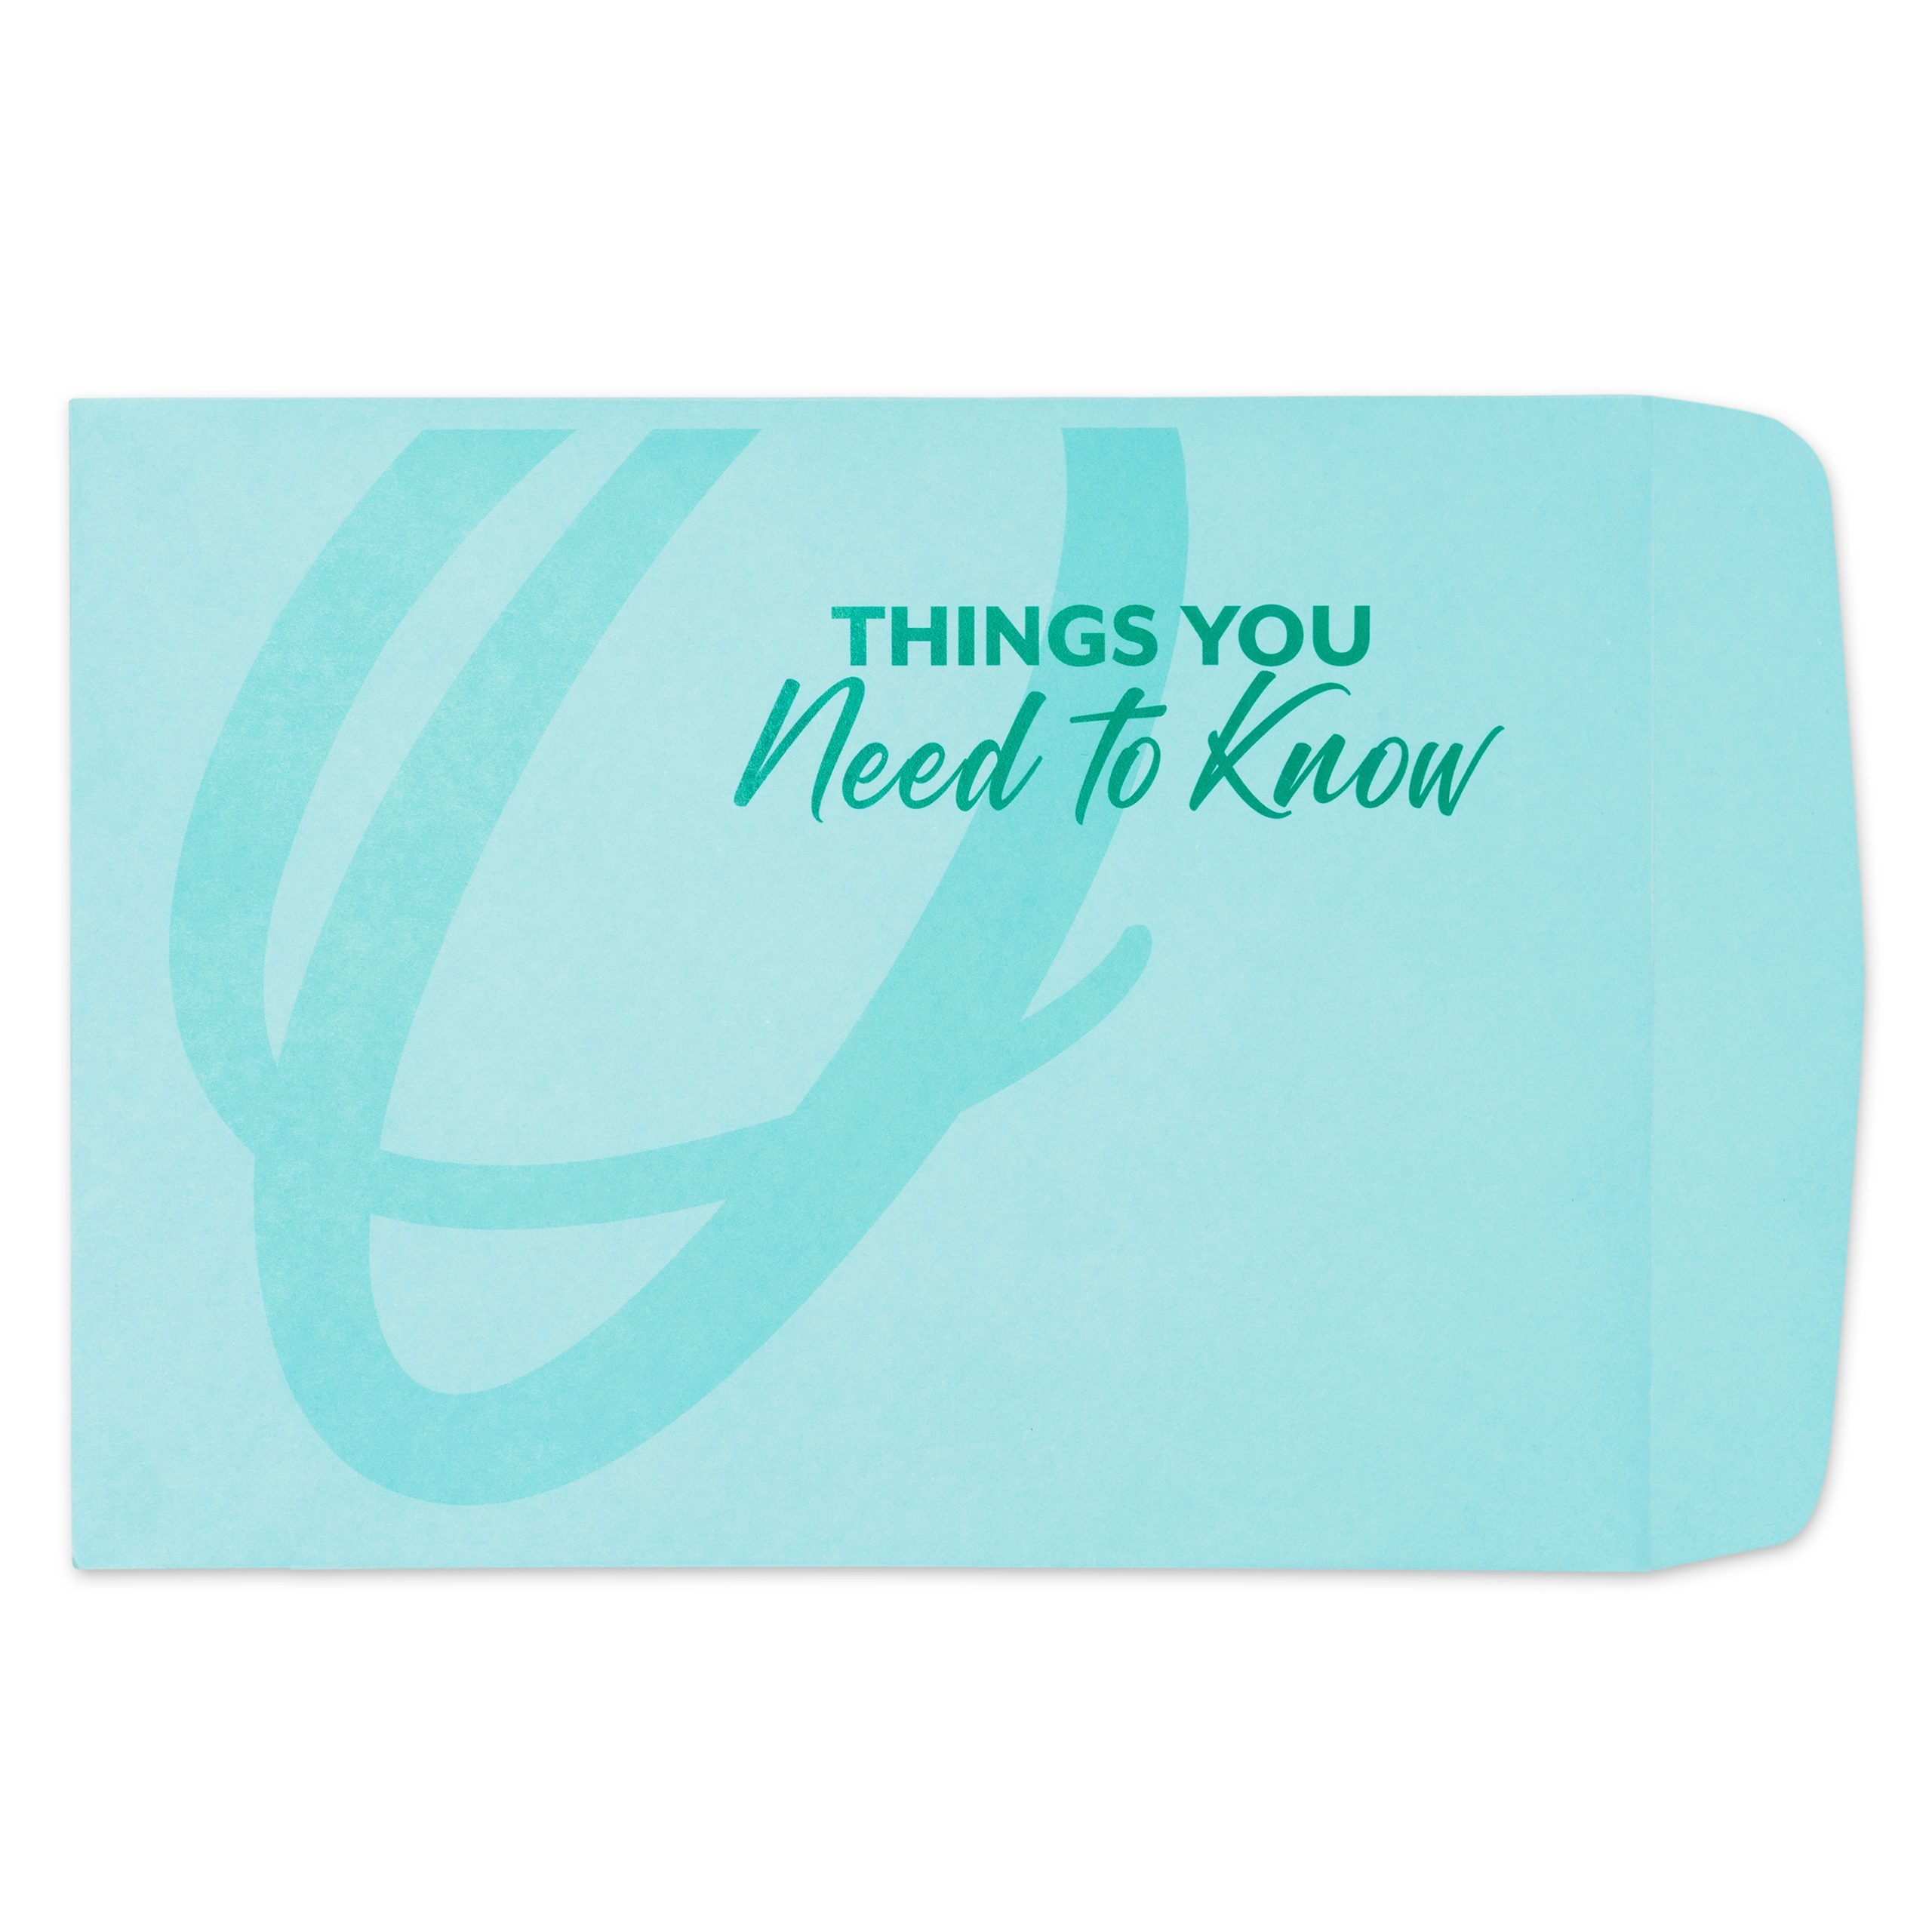 Berry blue Things You Need to Know envelope created by Circa Legacy